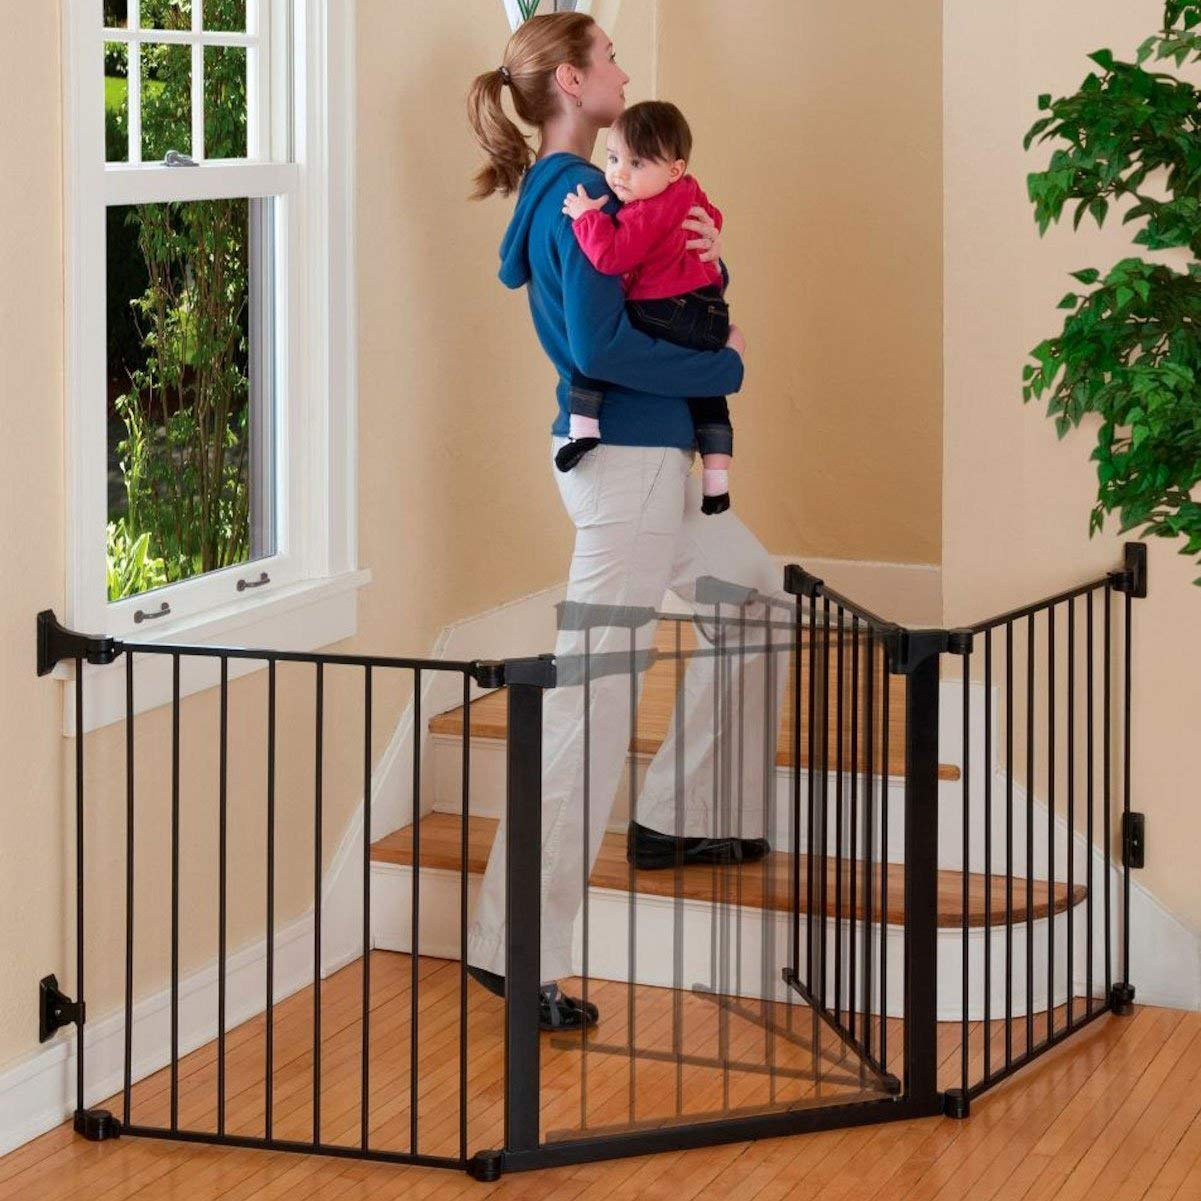 Kidco Gates Baby Buy Online From Fishpond Com Au